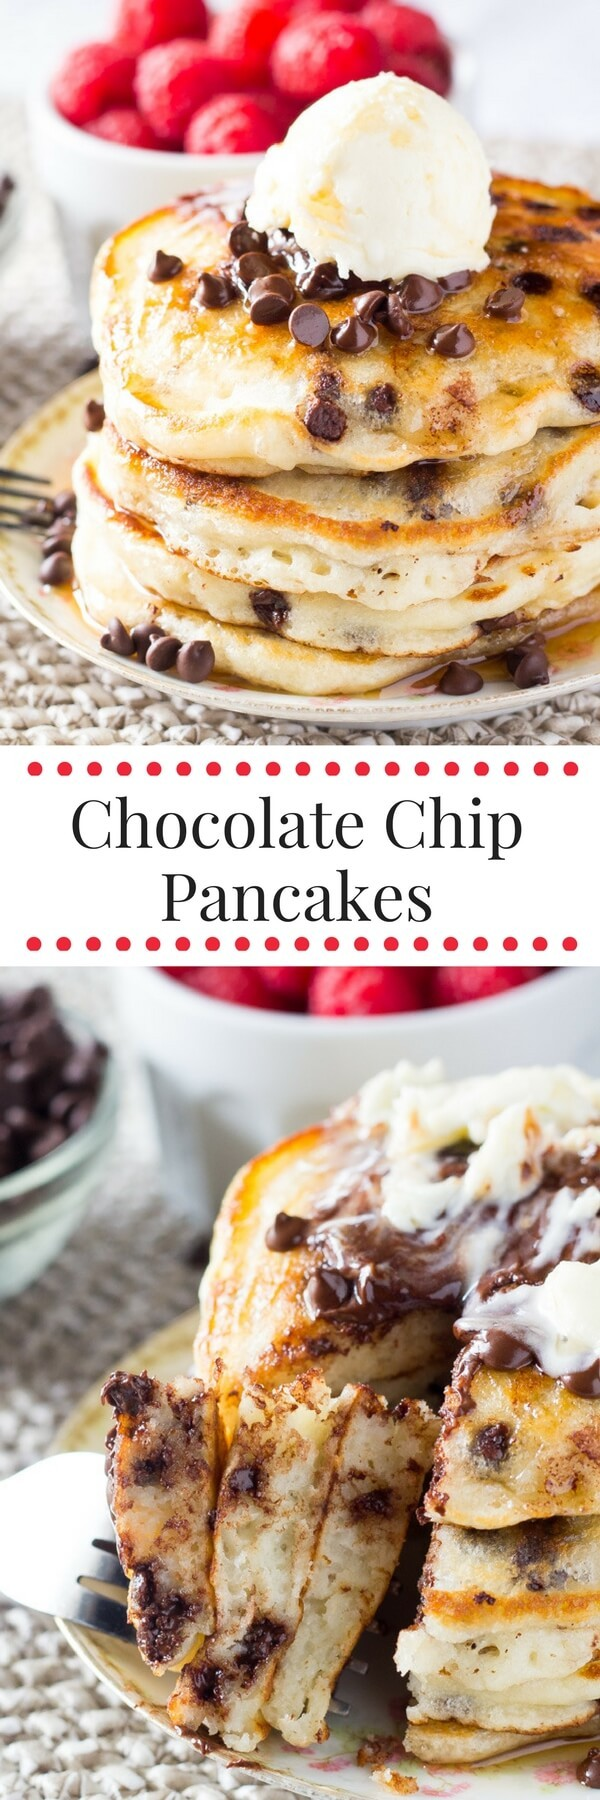 Get the recipe Chocolate Chip Pancakes @recipes_to_go